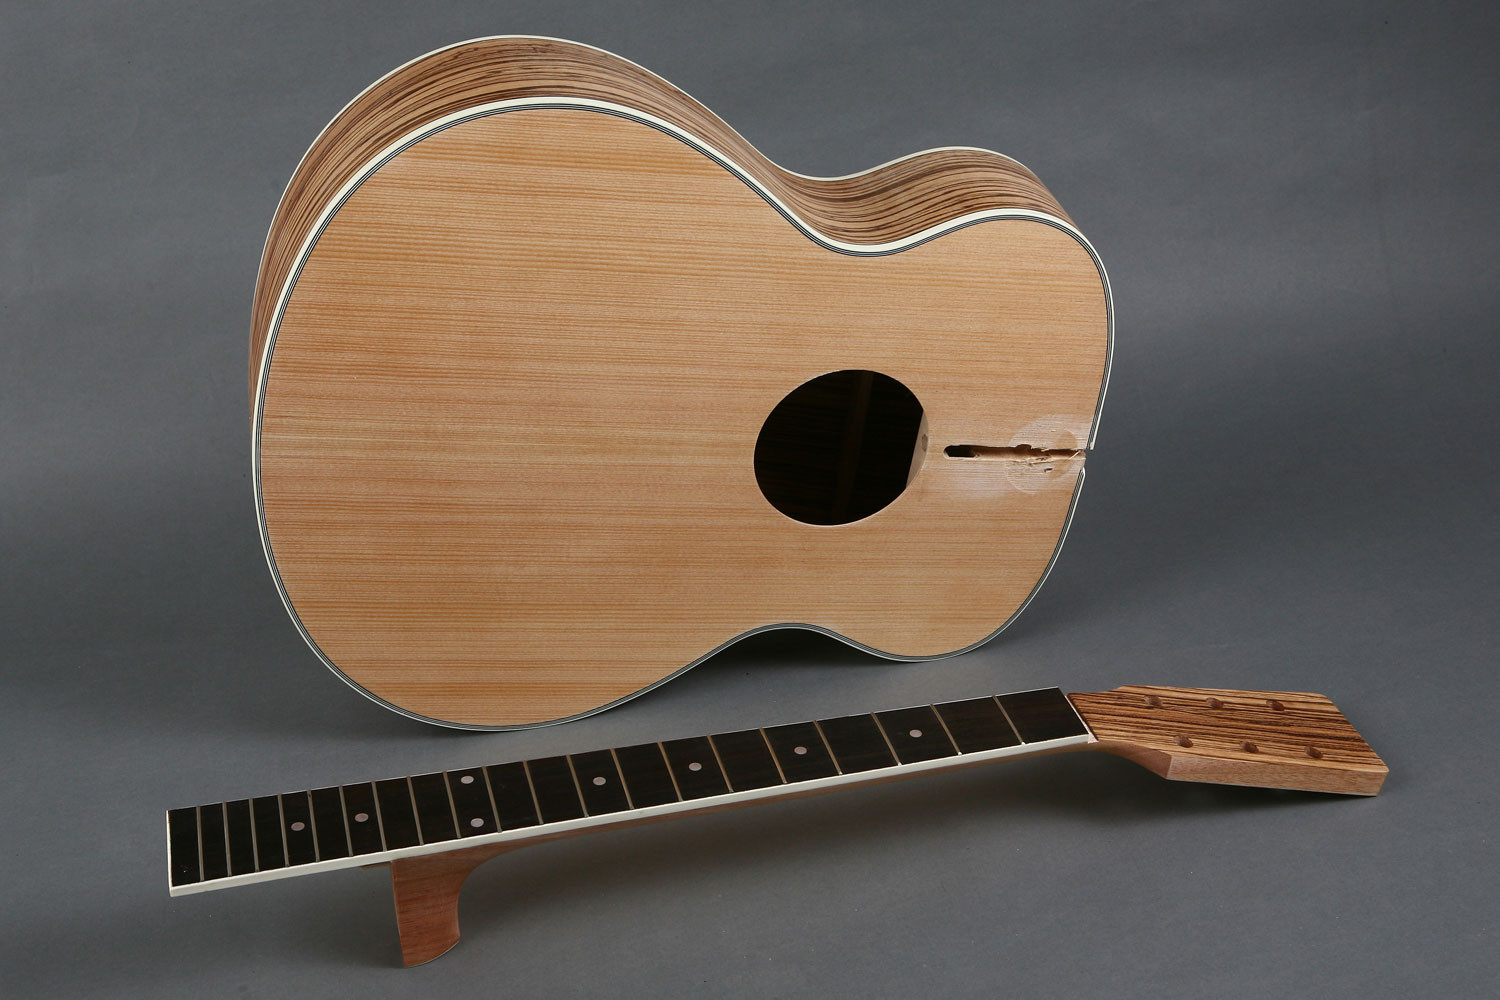 Best ideas about DIY Acoustic Guitar Kits . Save or Pin Spruce Top Jumbo Acoustic Guitar DIY Kit GK S4022 BYGuitar Now.